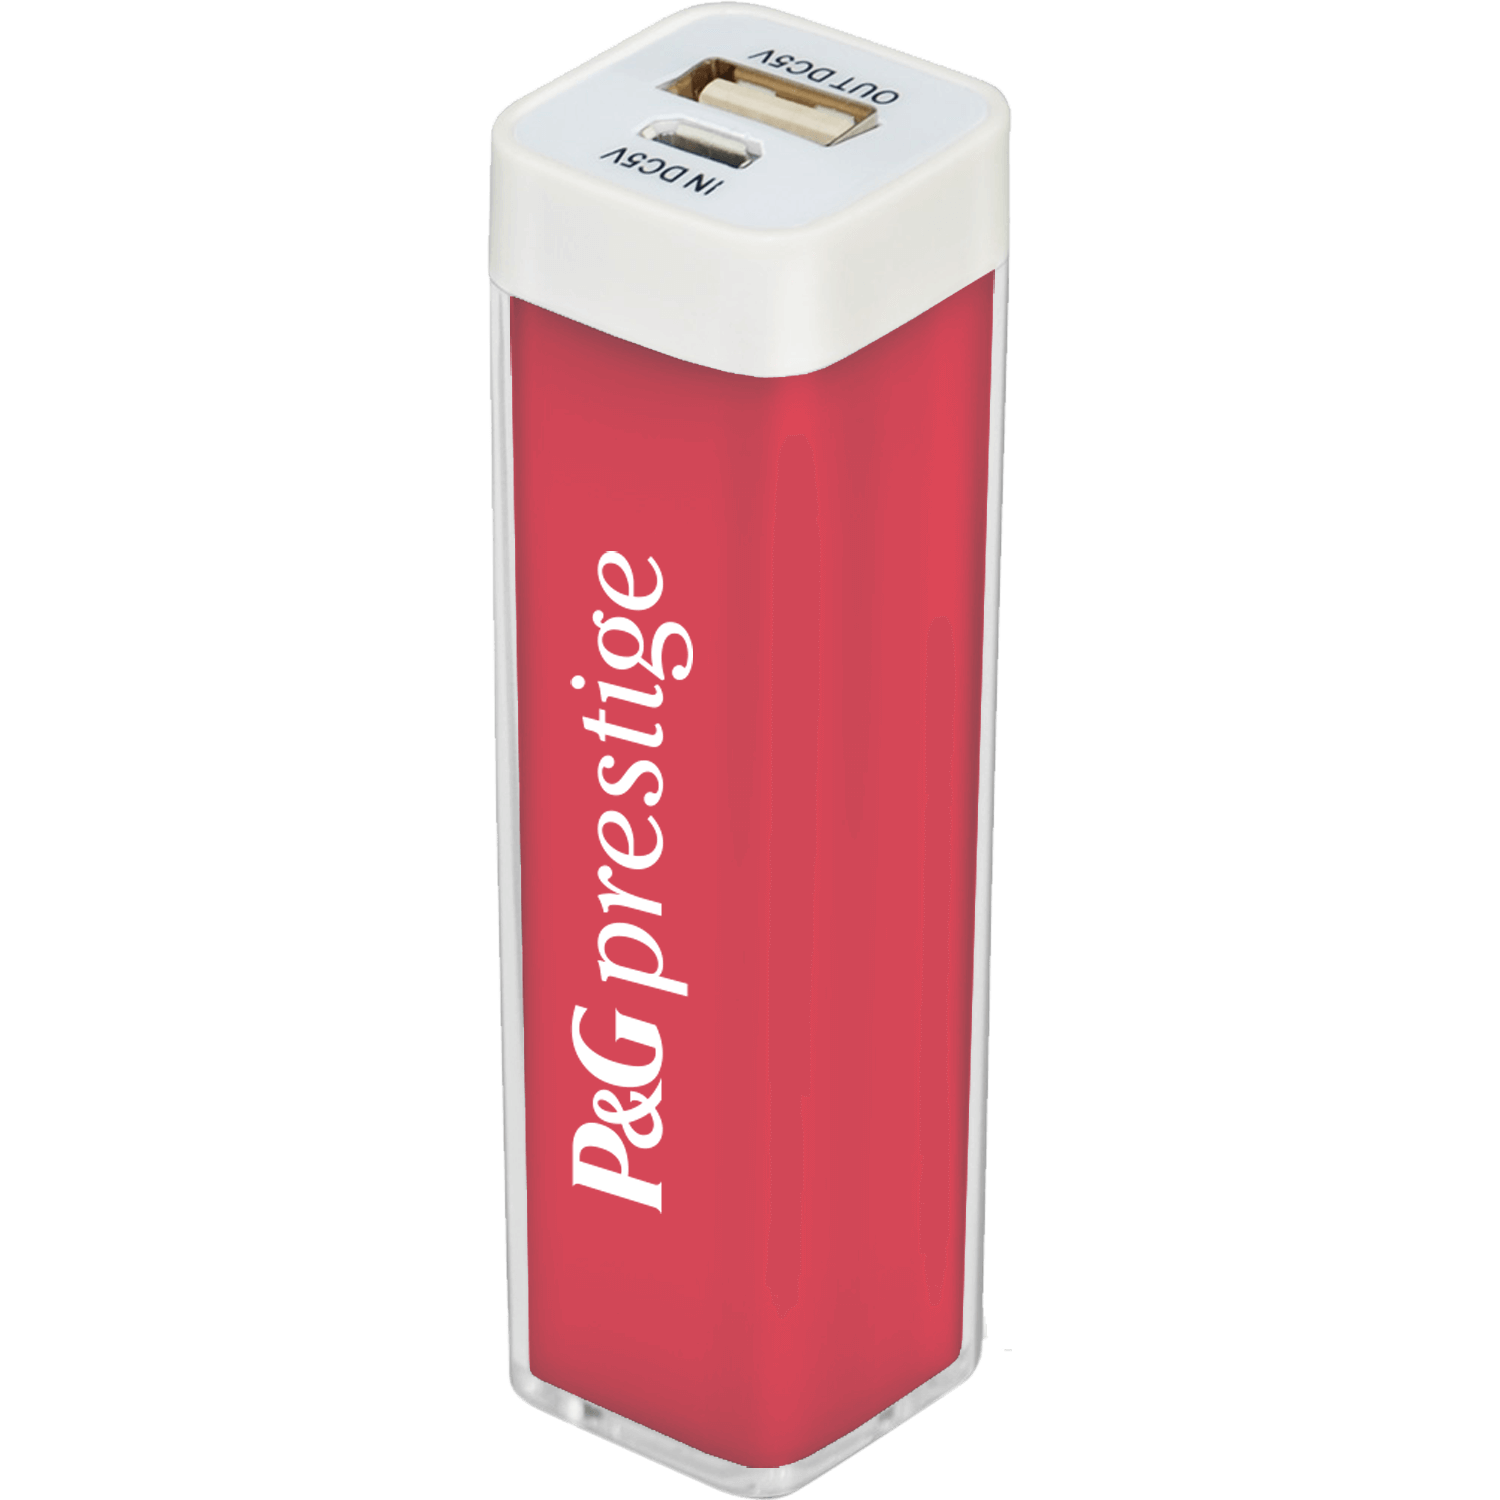 Tube Power Bank Charger 2200mAh